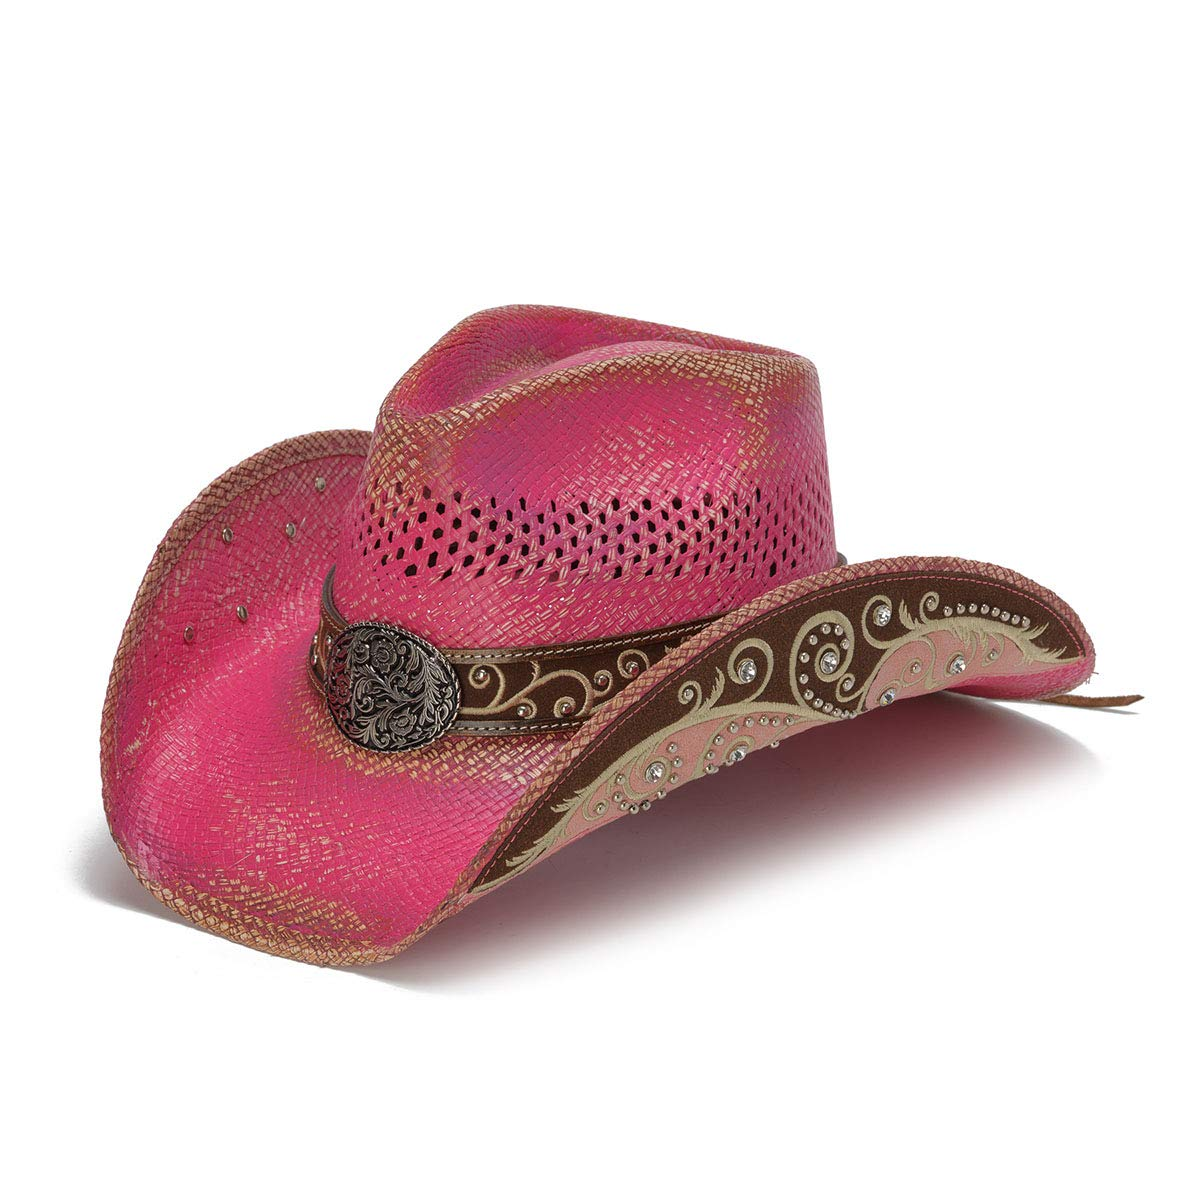 Stampede Hats Women's Burn The Breeze Flower Filigree Cowboy Hat S Pink by Stampede Hats